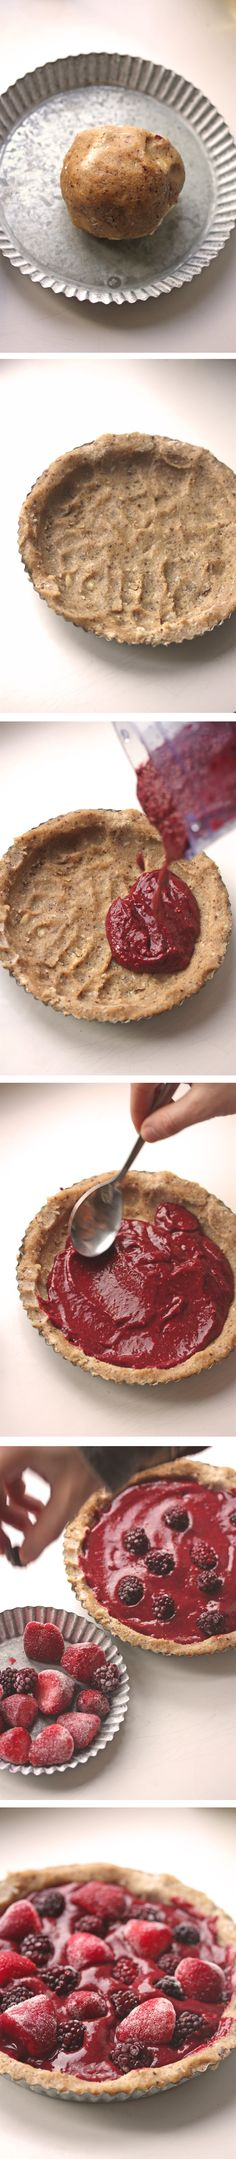 Simple Chia pudding Pie. #no-bake #raw #vegan #pie #chia #healthy #dessert #berries #sweet #awesome #photo